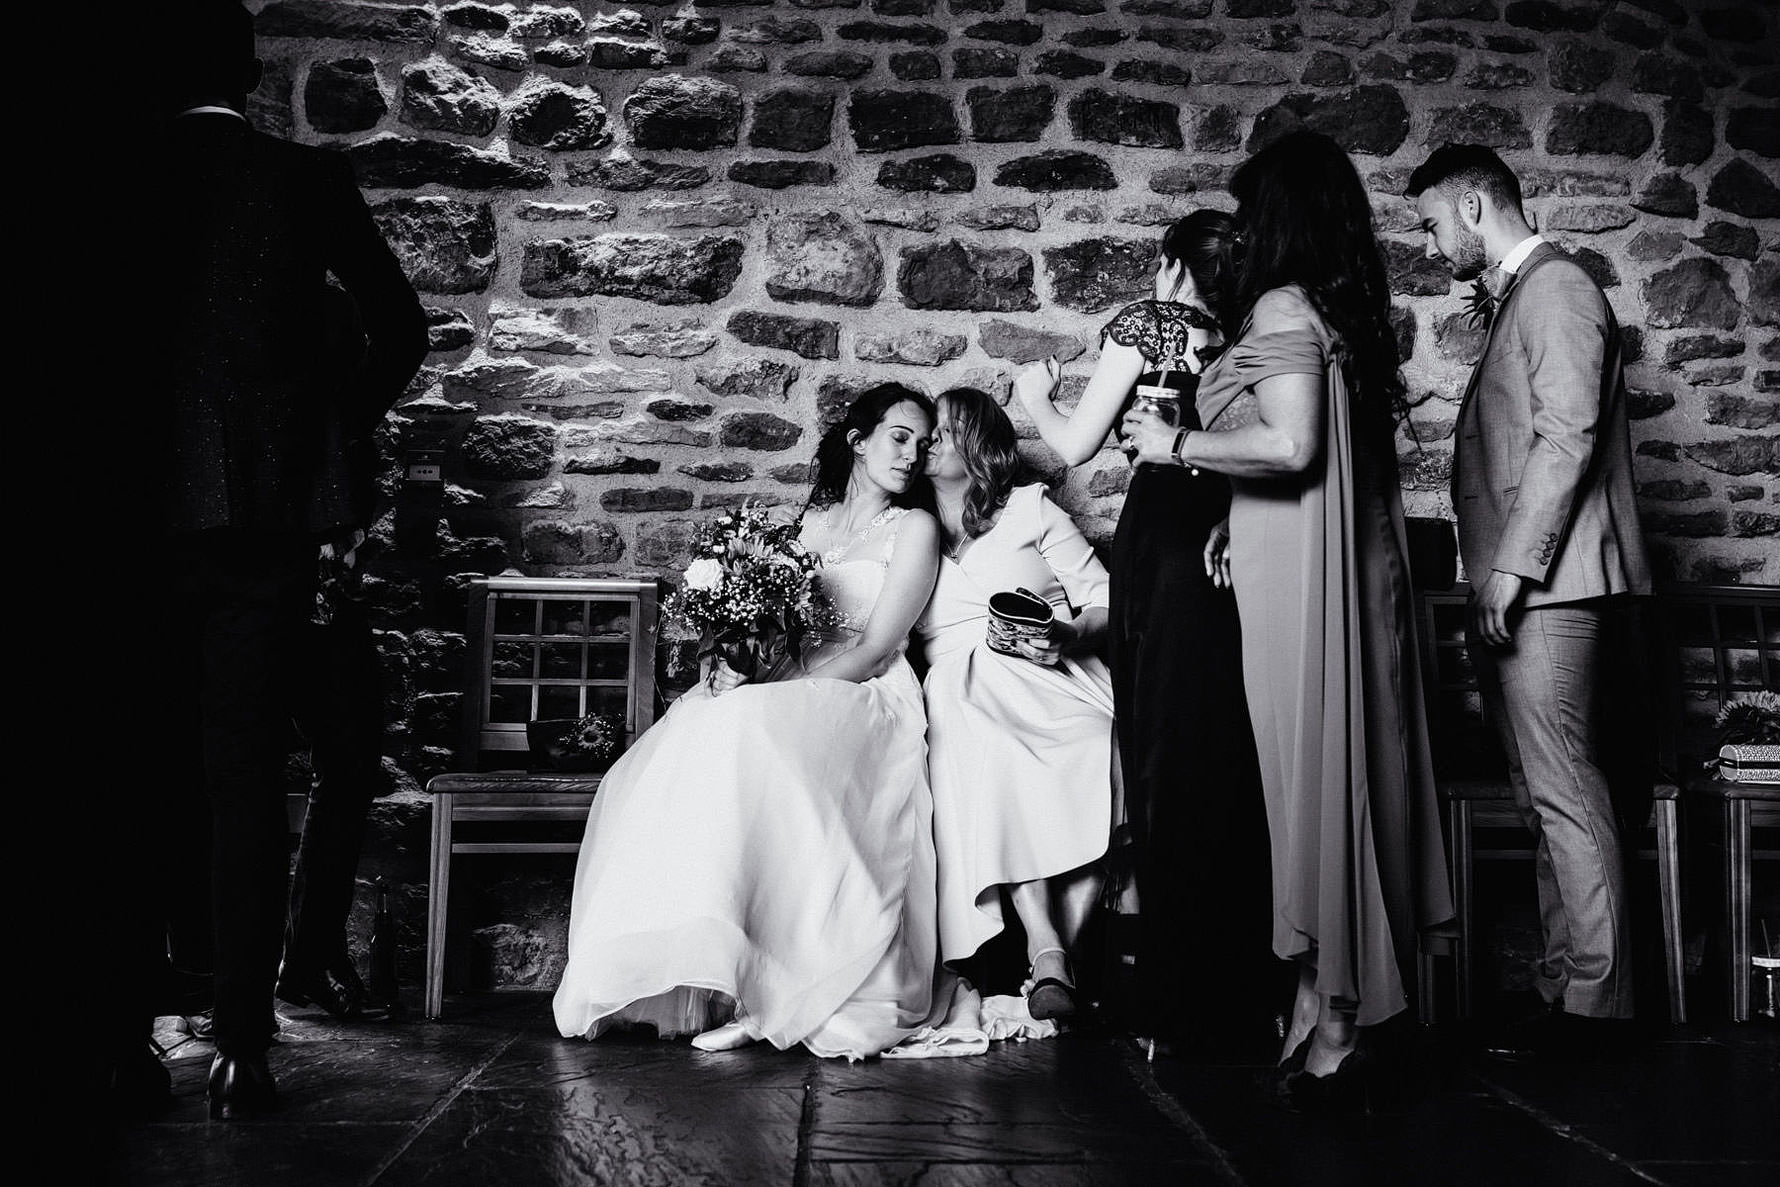 a beautiful moment between the bride and her mother